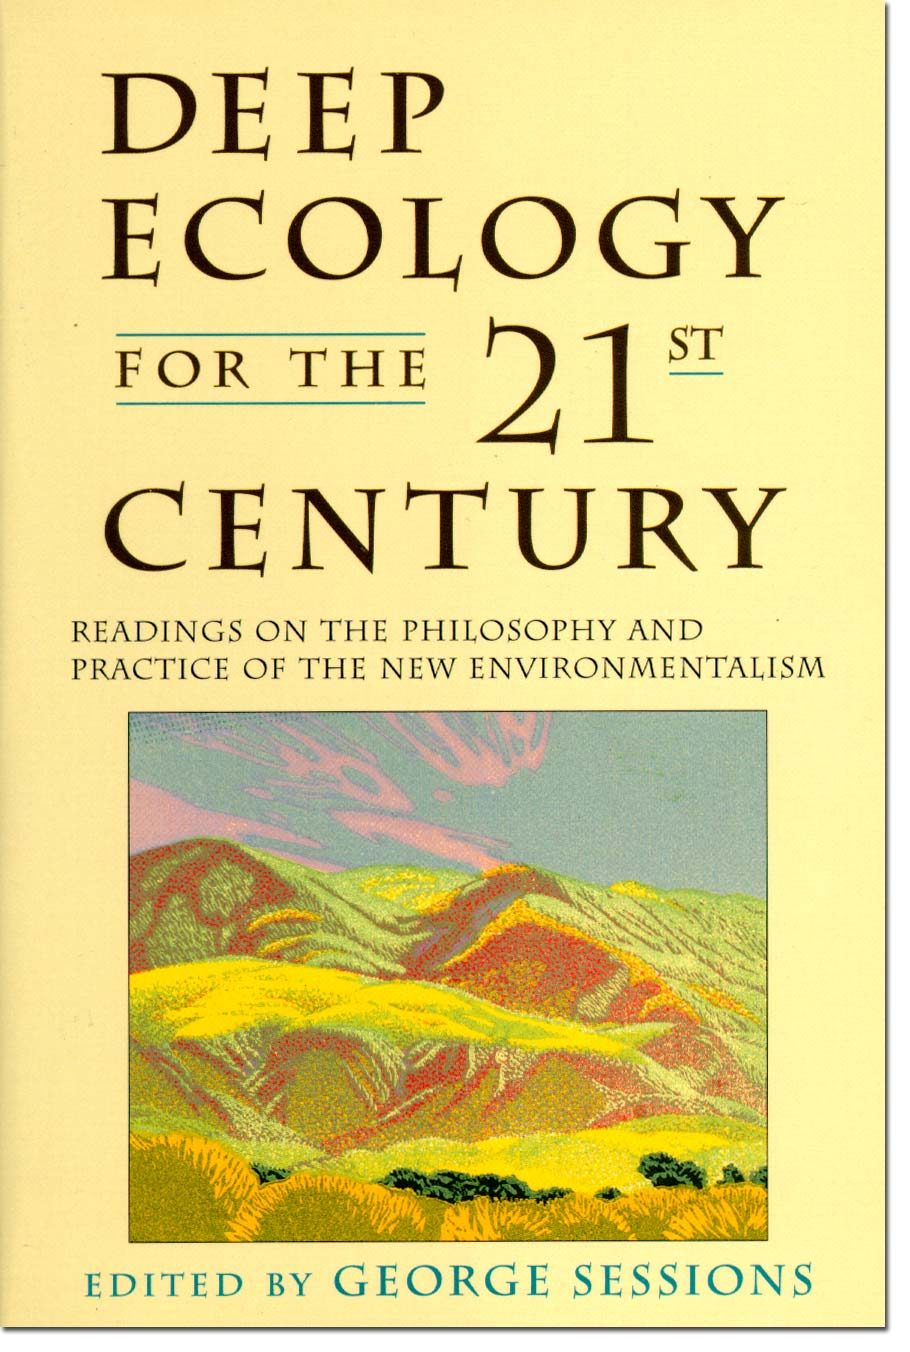 deep ecology and shallow ecology Deep ecology is presented in contrast to reformist 'shallow ecology' which retains a utilitarian and anthropocentric attitude to nature 'shallow ecology' tends to focuses on technological solutions to environmental problems.